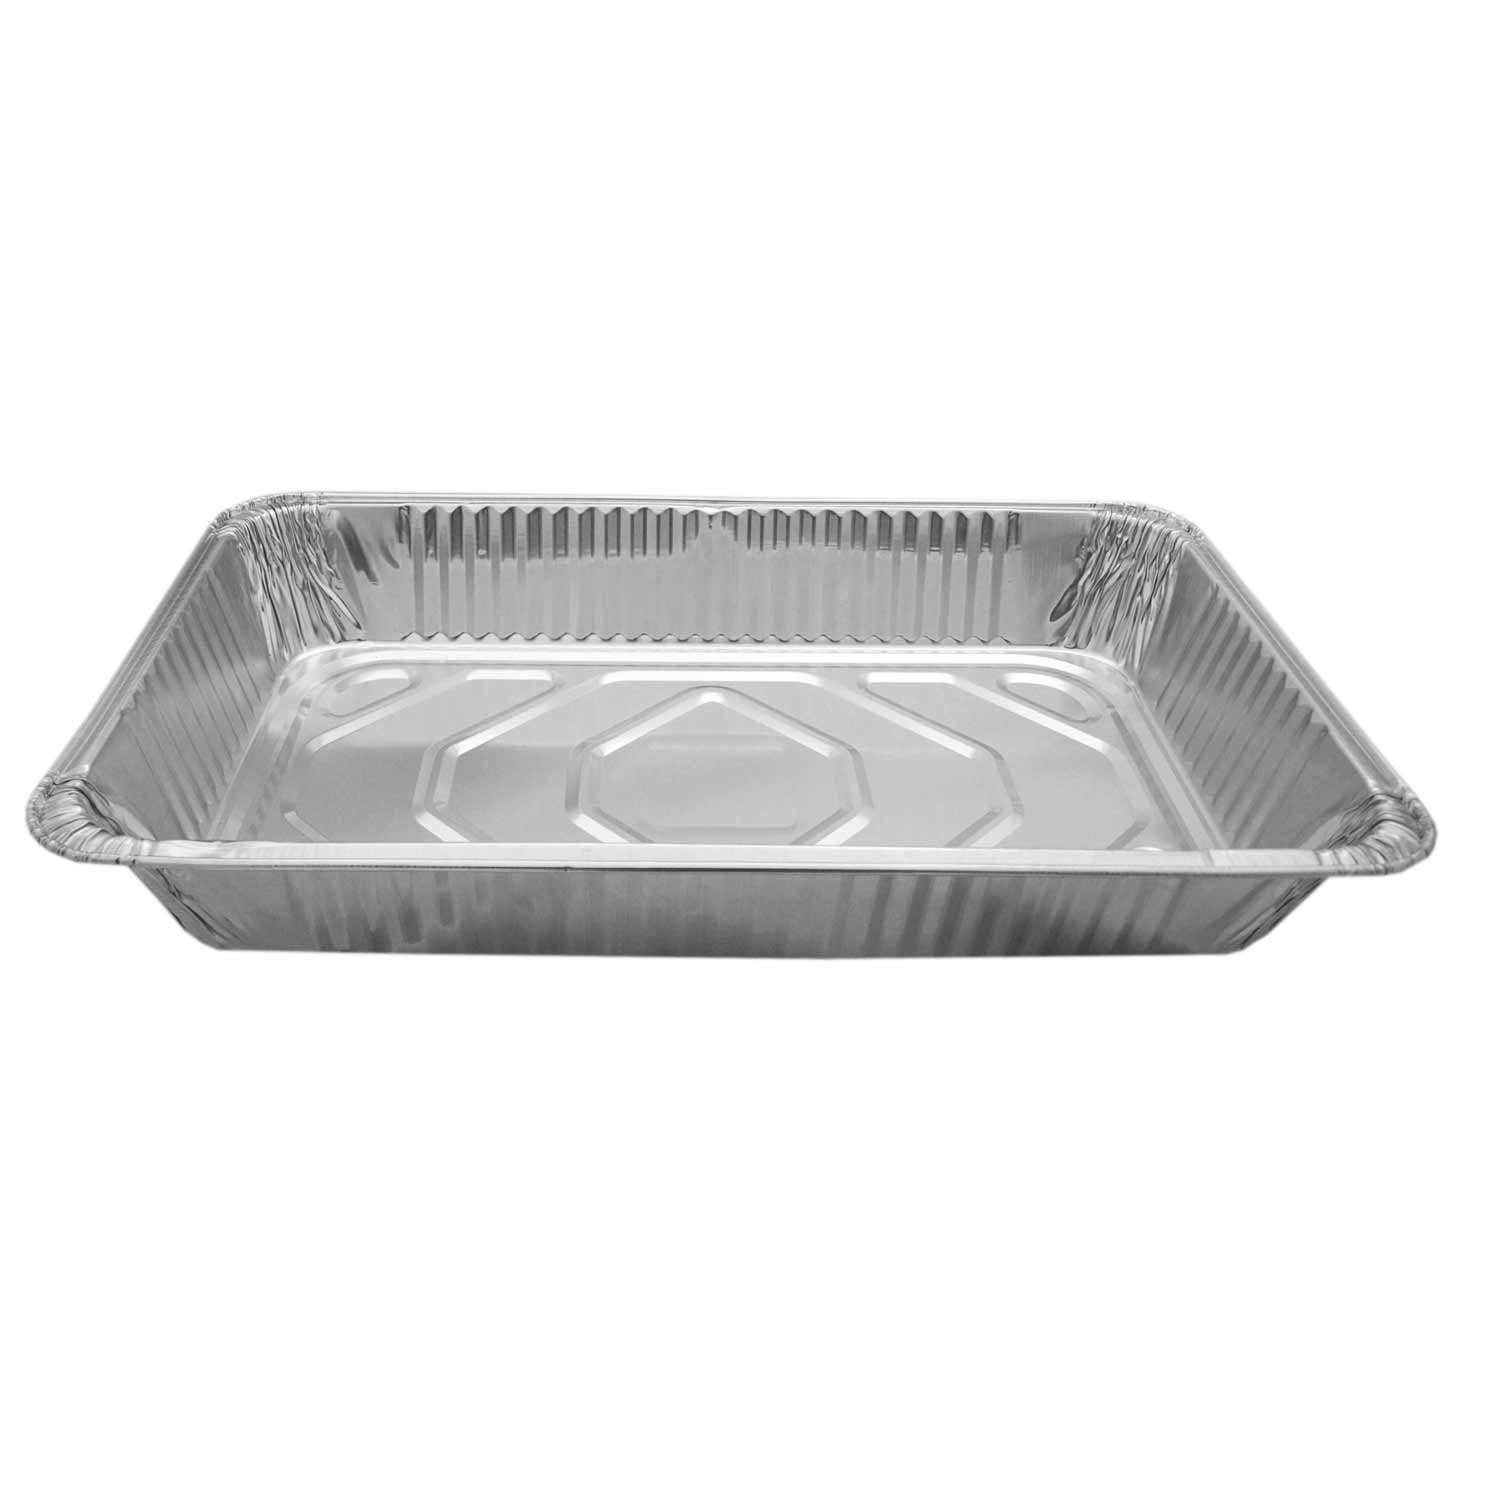 Party Essentials F20790 Heavy Duty Full Size Deep Aluminum Foil Steam Table Pan (Case of 50)